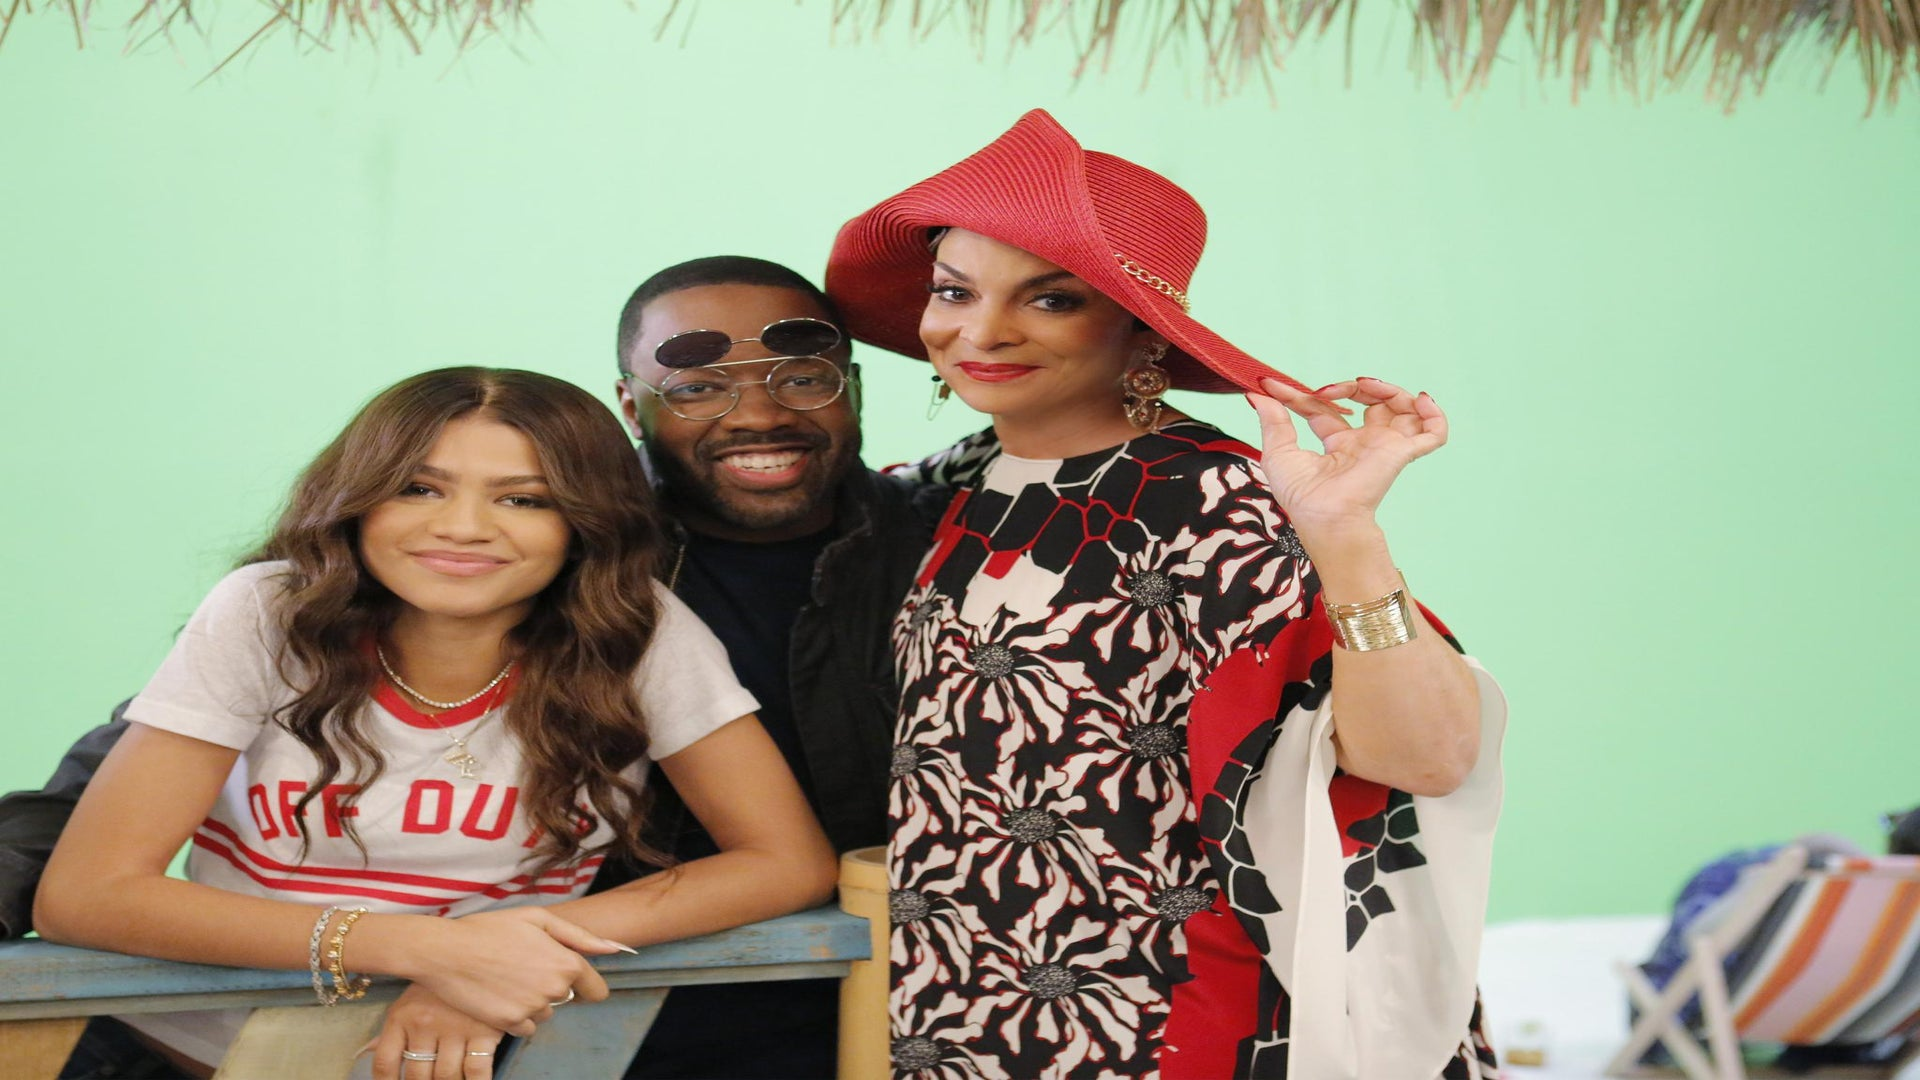 Jasmine Guy and Kadeem Hardison Reunite, Join Zendaya on 'K.C. Undercover'